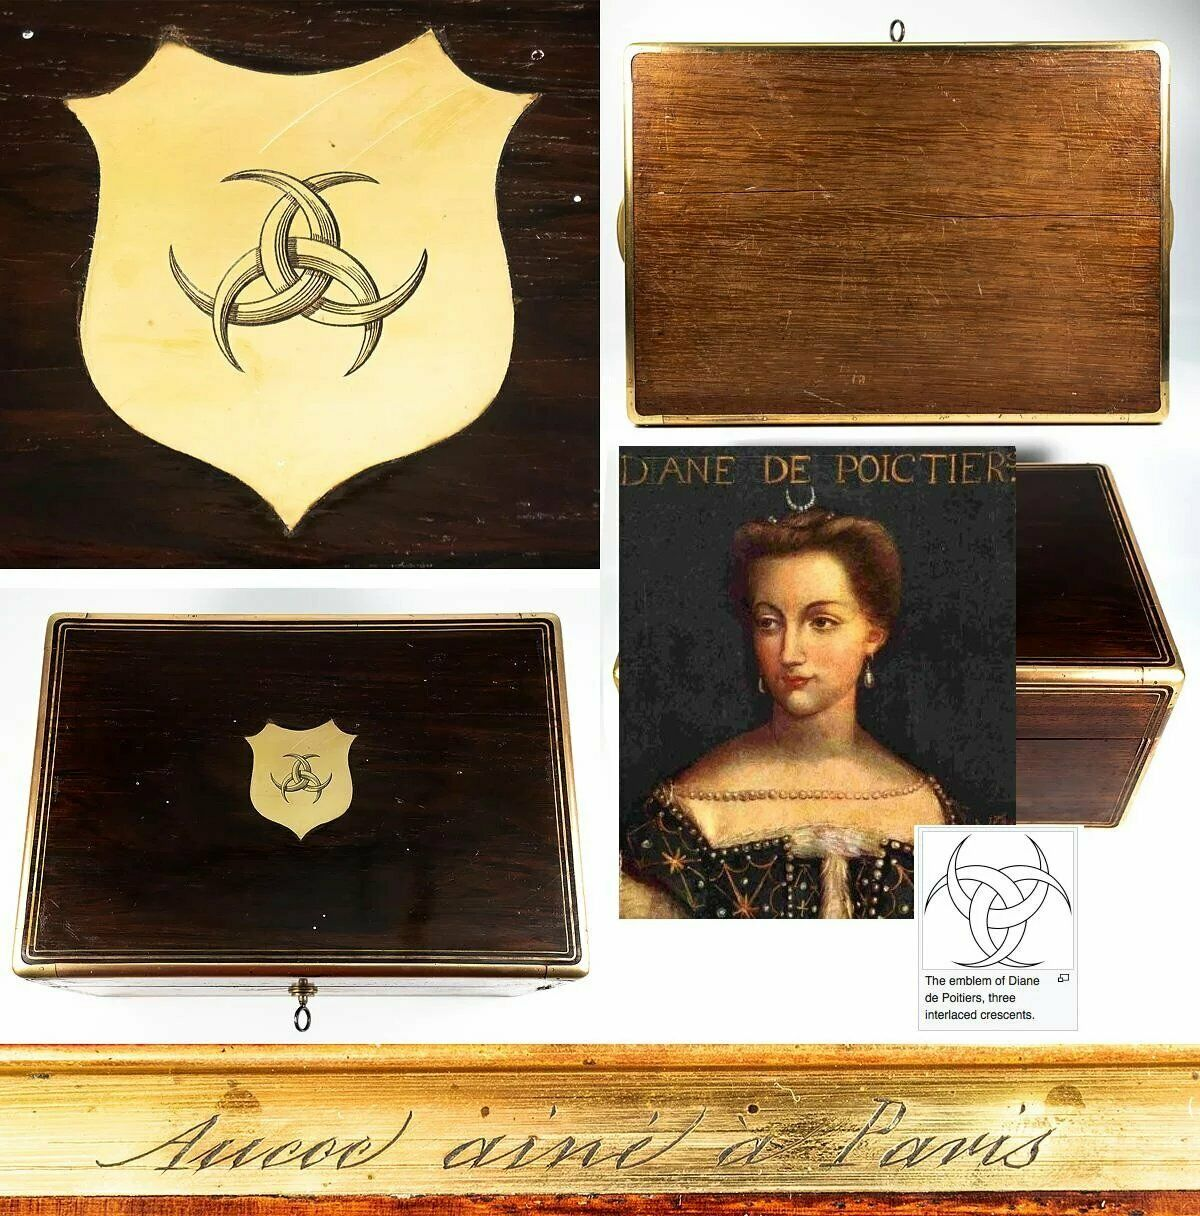 Aucoc Aine Paris Antique French Dressing Box, Casket, Crest of Diane de Poitiers